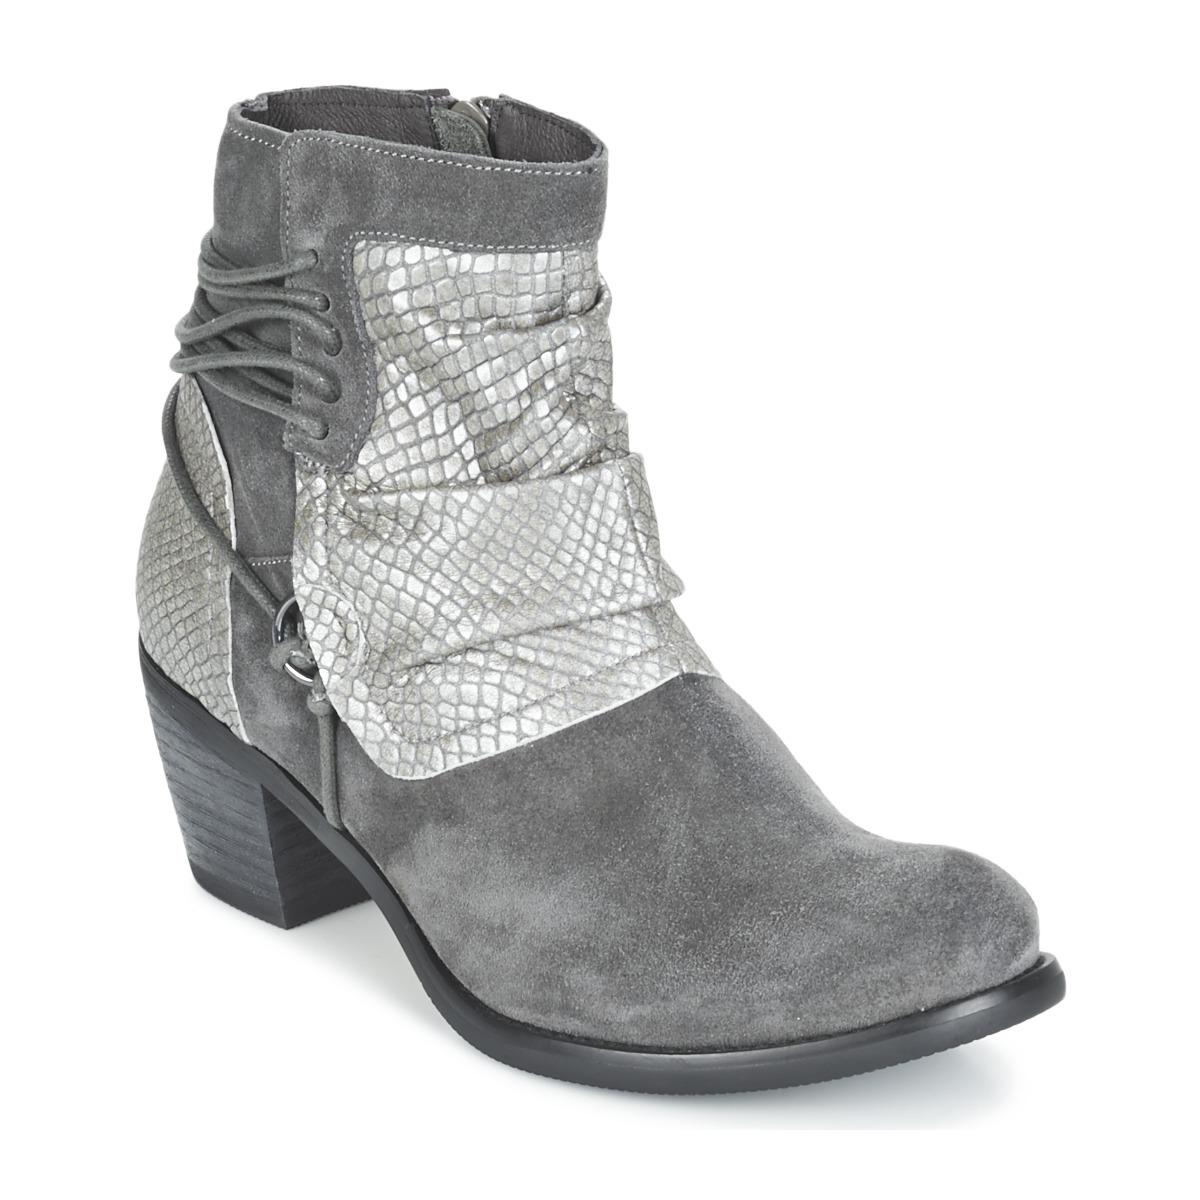 Clearance Online Fake MAM OCTO women's Low Ankle Boots in Buy Cheap Choice dNfkIcd